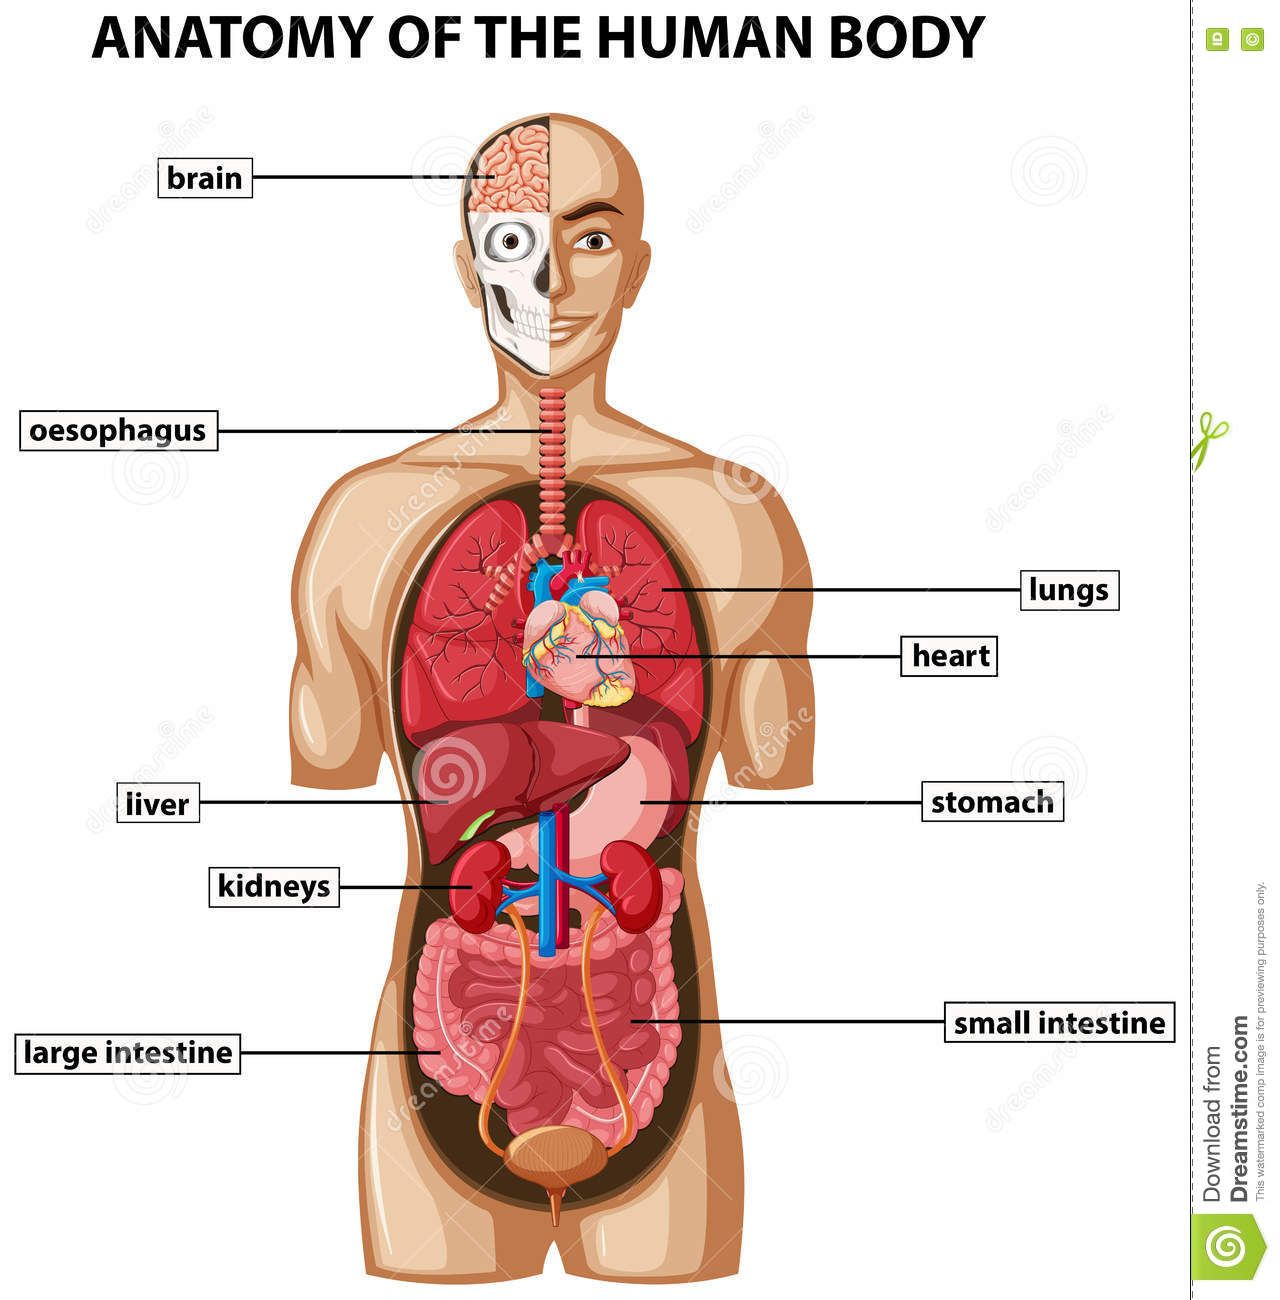 Image Internal Organs Human Body Medical Pinterest Human Body